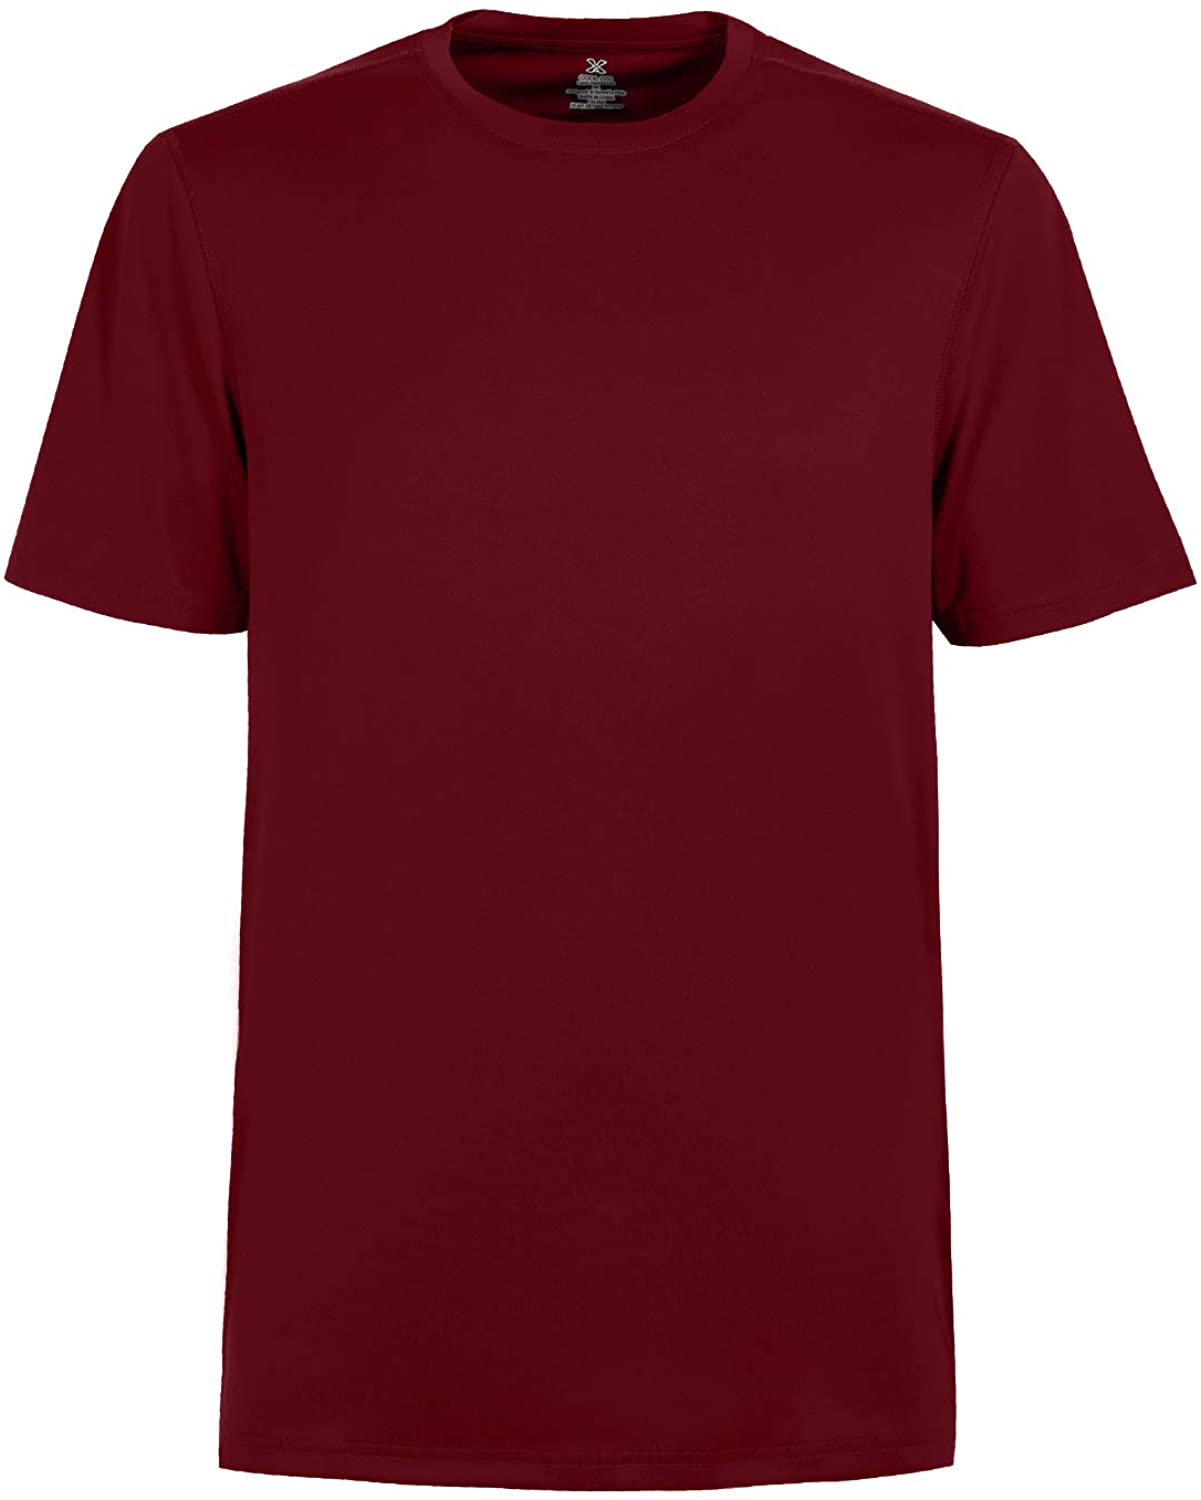 Mens Quick Dry Fit Mositure Wicking Shirt Performance T Athletic Soldering Tucson Mall